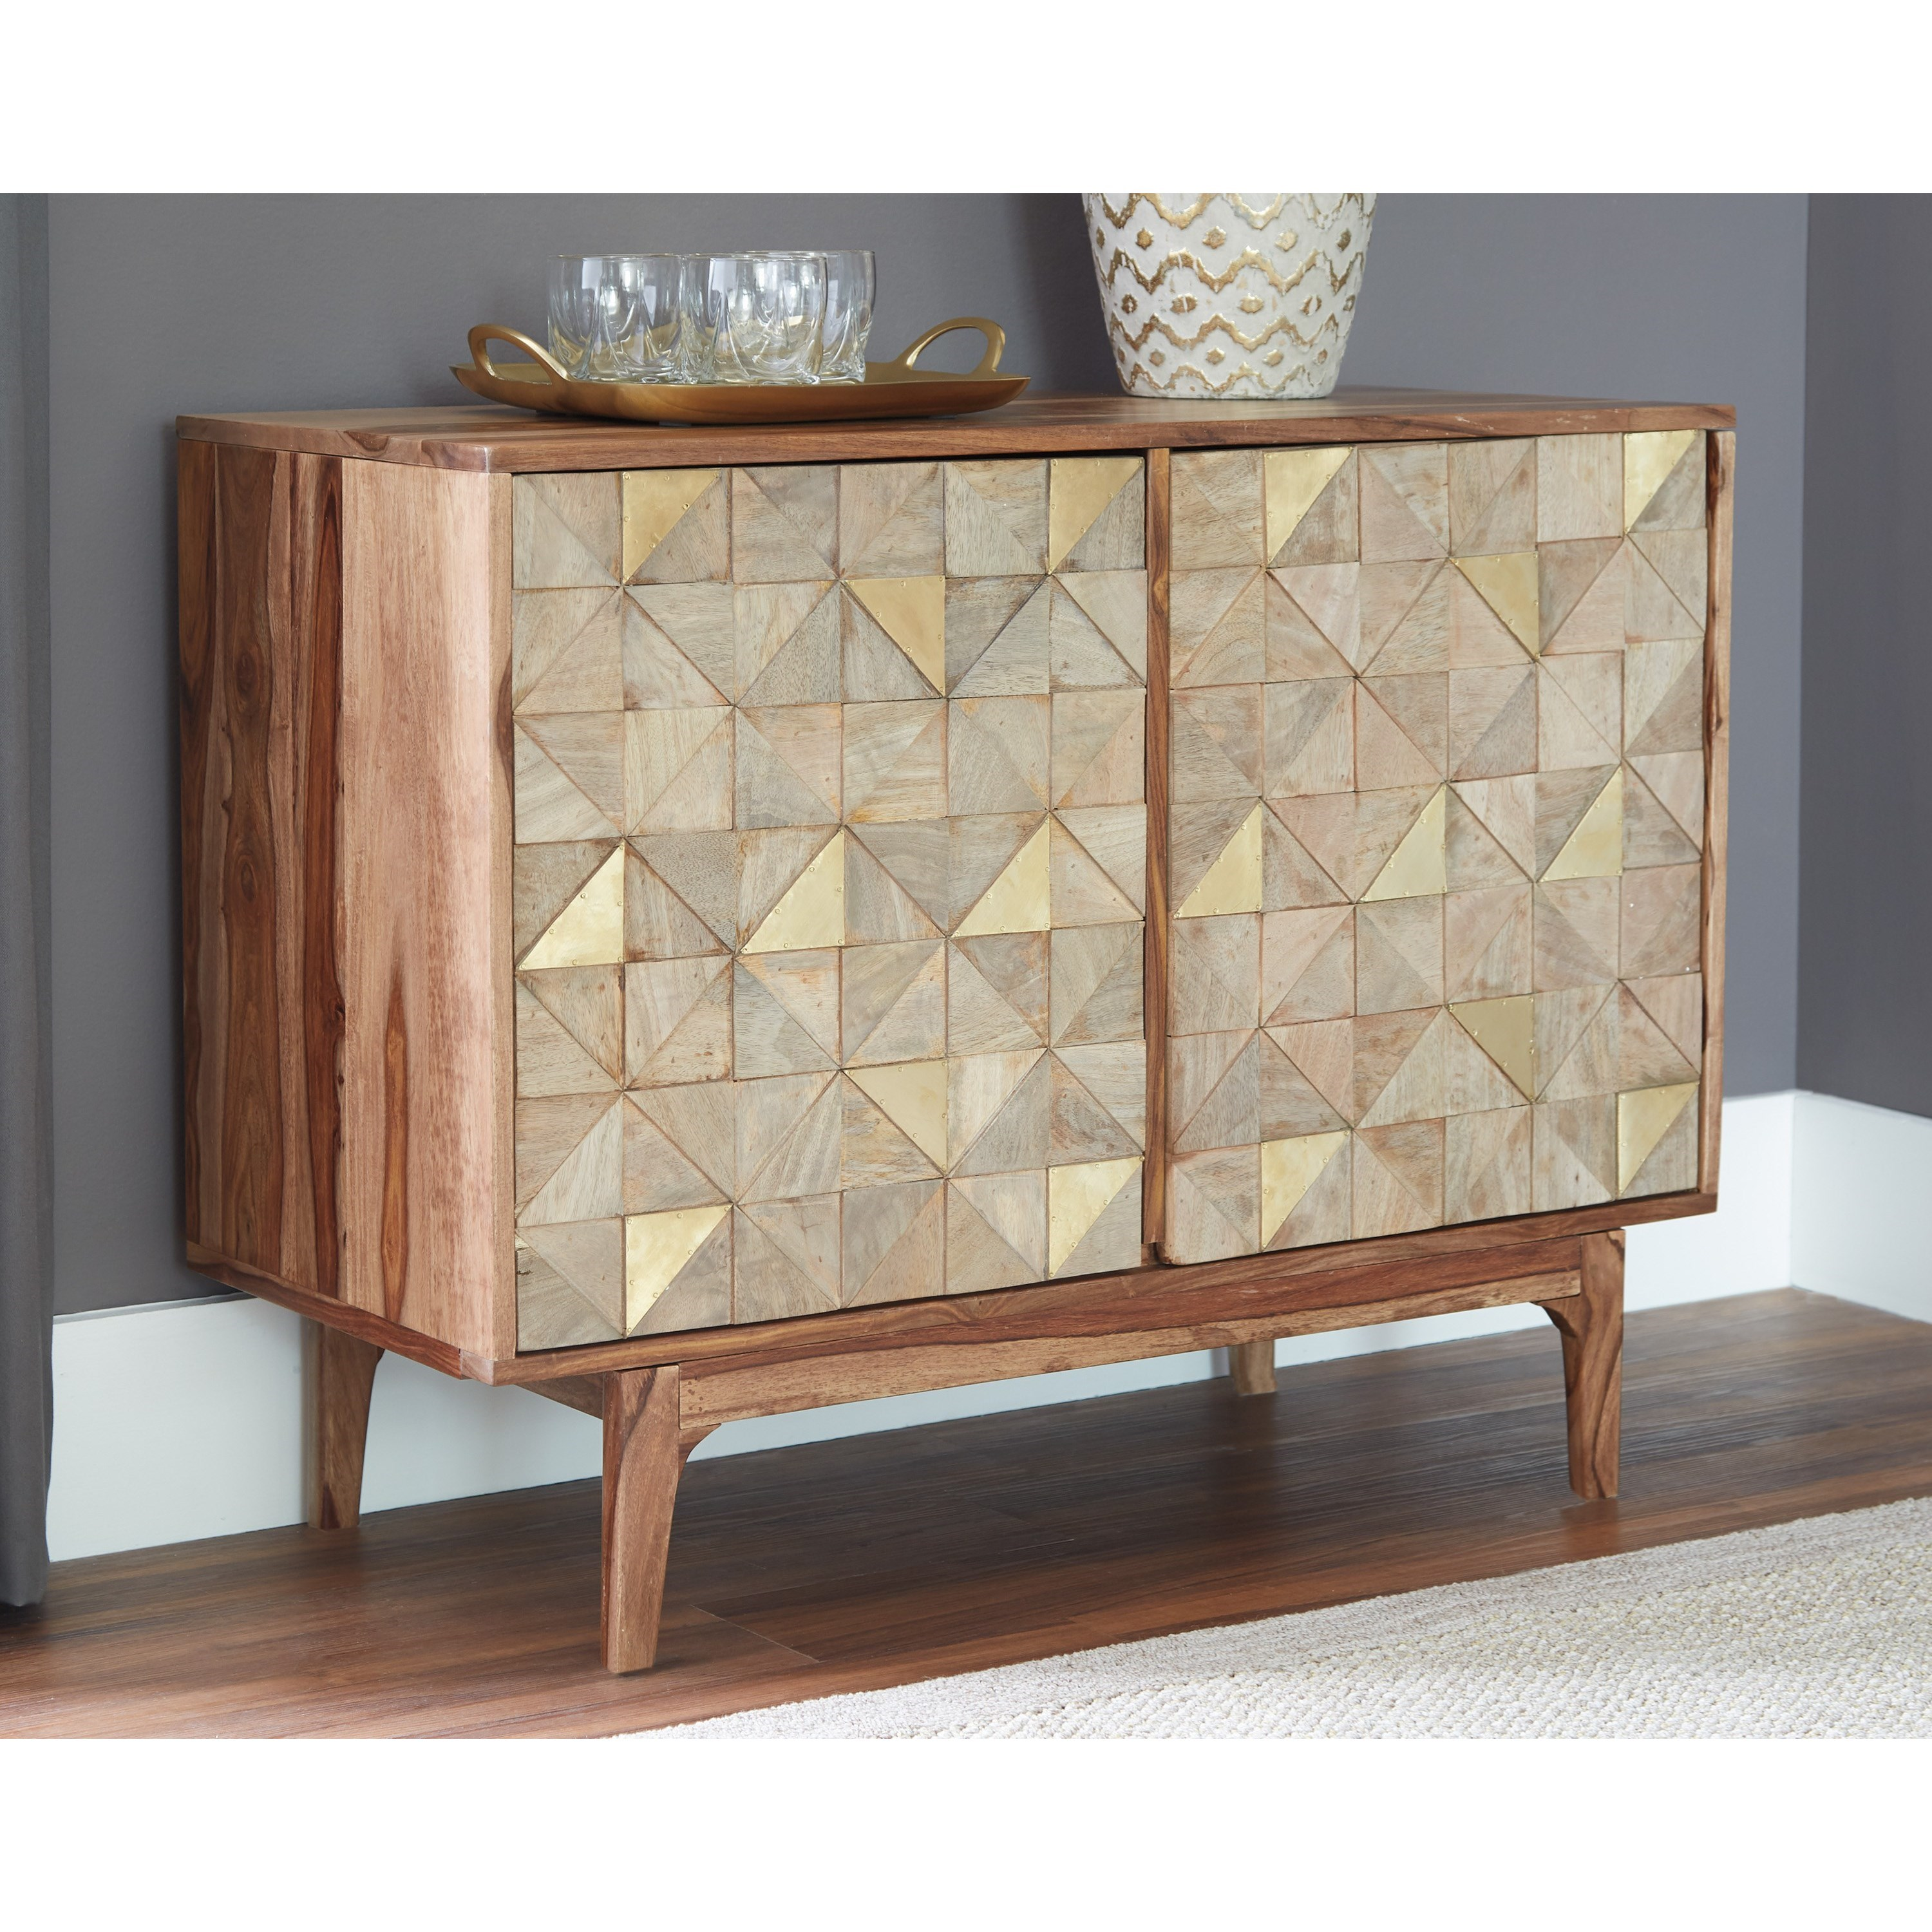 Levitz Home Furnishings: Signature Design By Ashley Carolmore A4000169 Accent